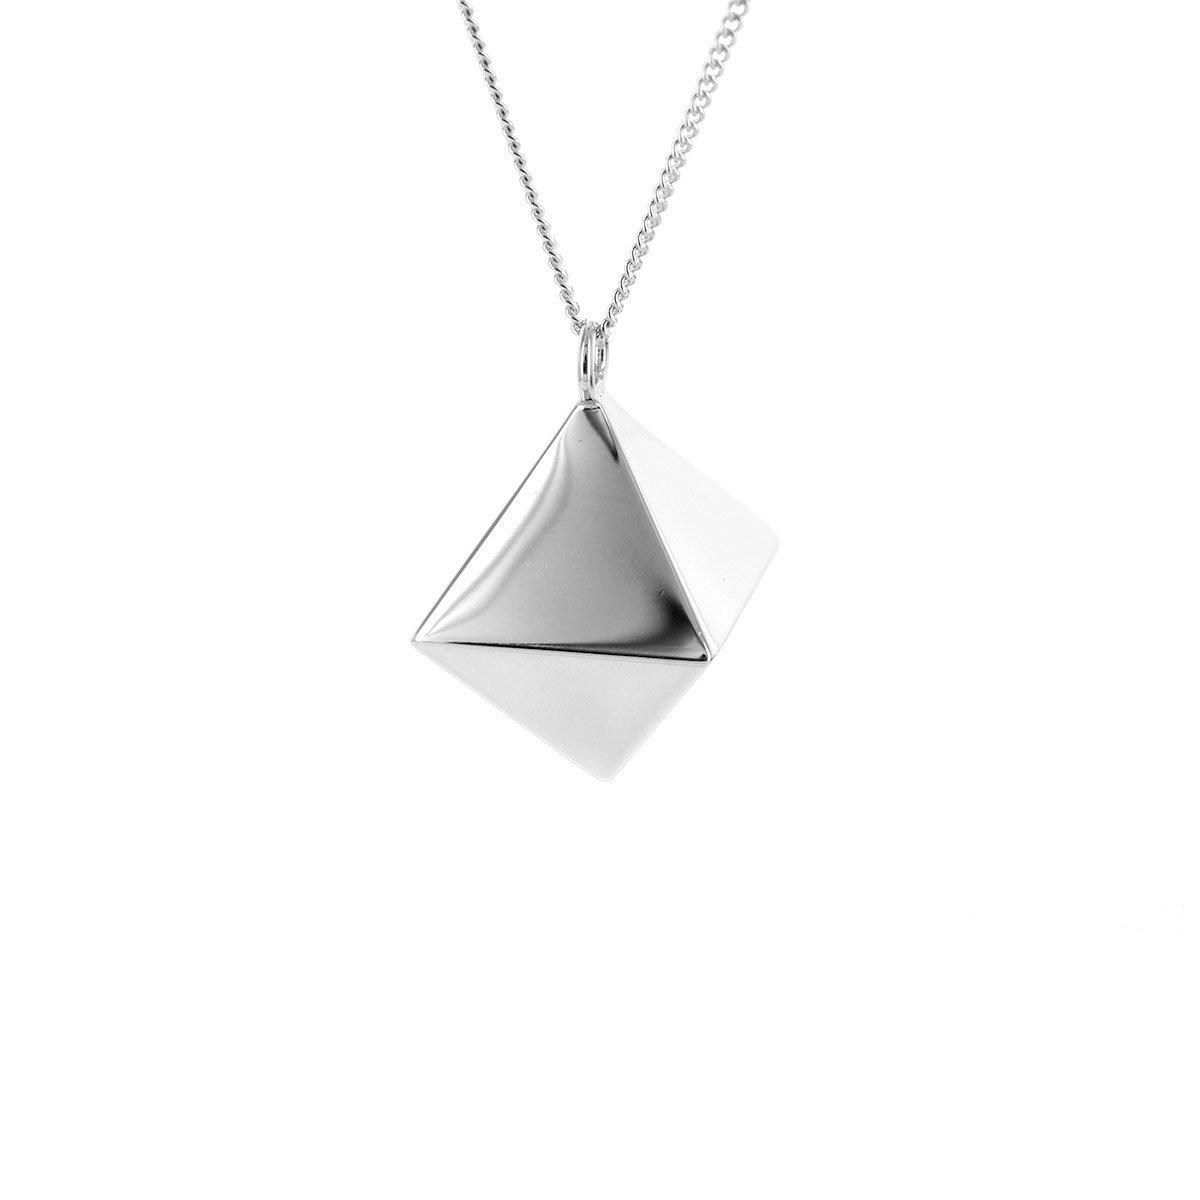 Origami Jewellery Sterling Silver Octagem Necklace KK4yP